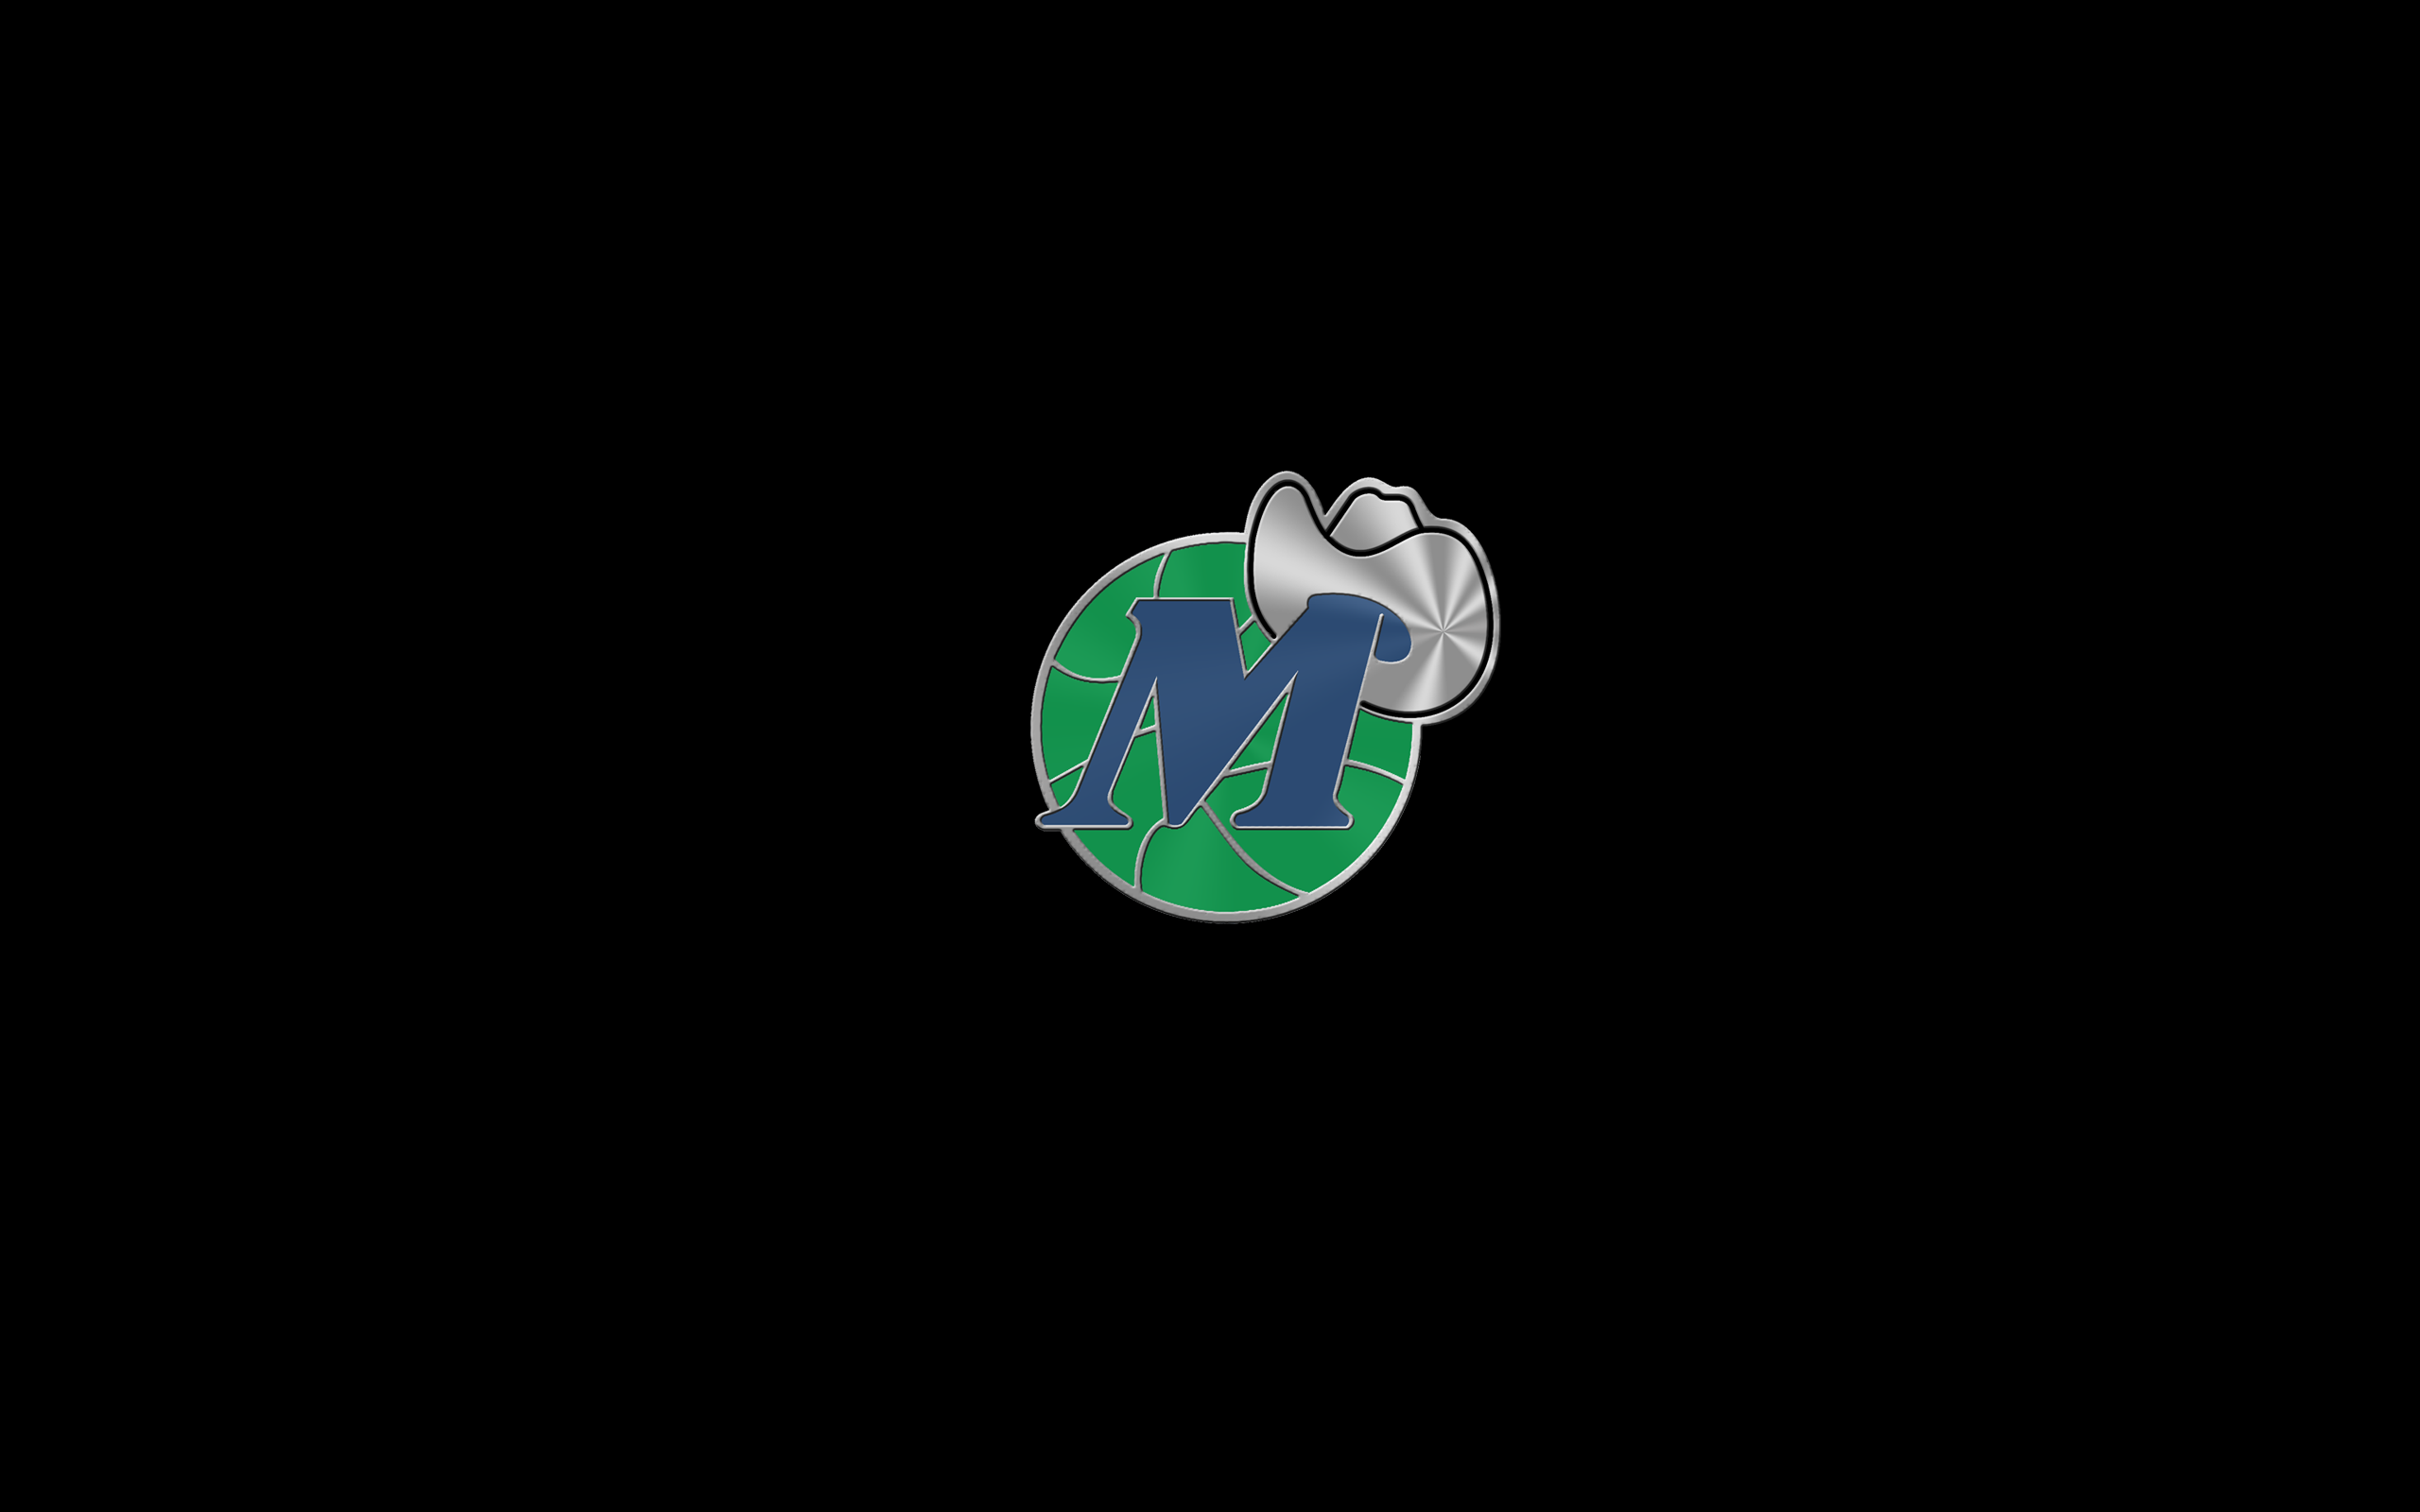 Dallas Mavericks Full HD Wallpaper And Background Image